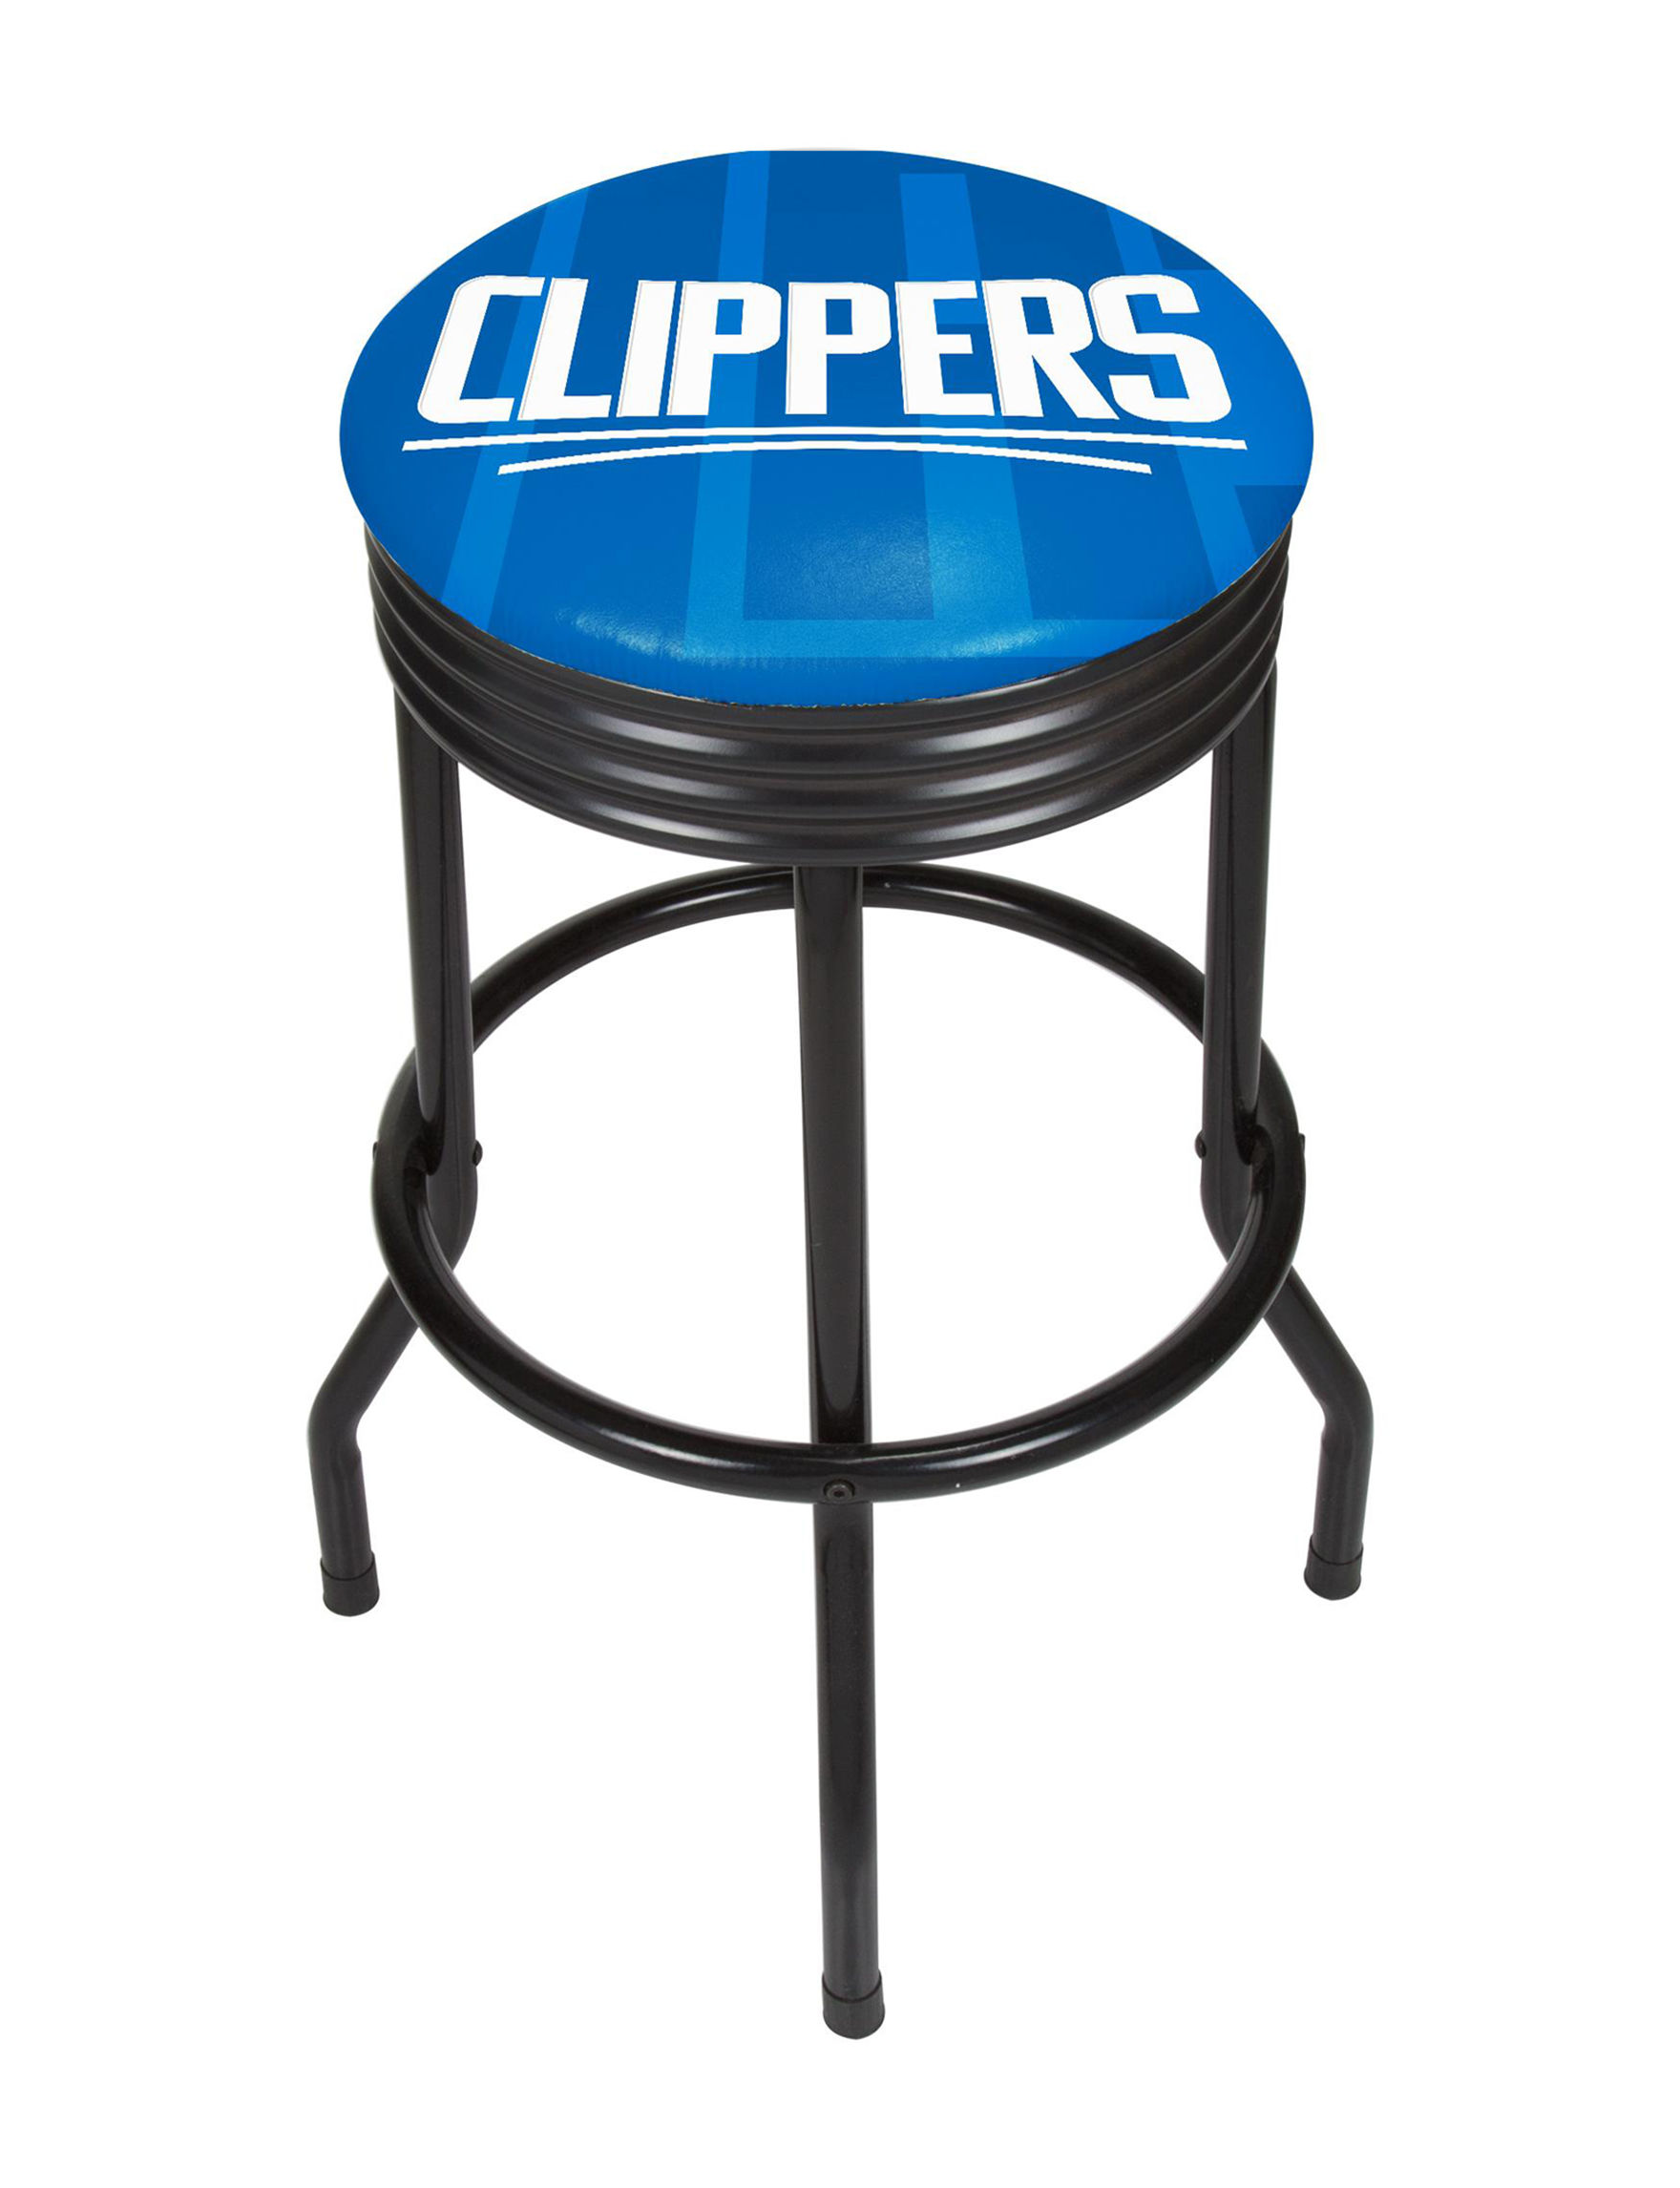 NBA Blue / White Bar & Kitchen Stools Kitchen & Dining Furniture NBA